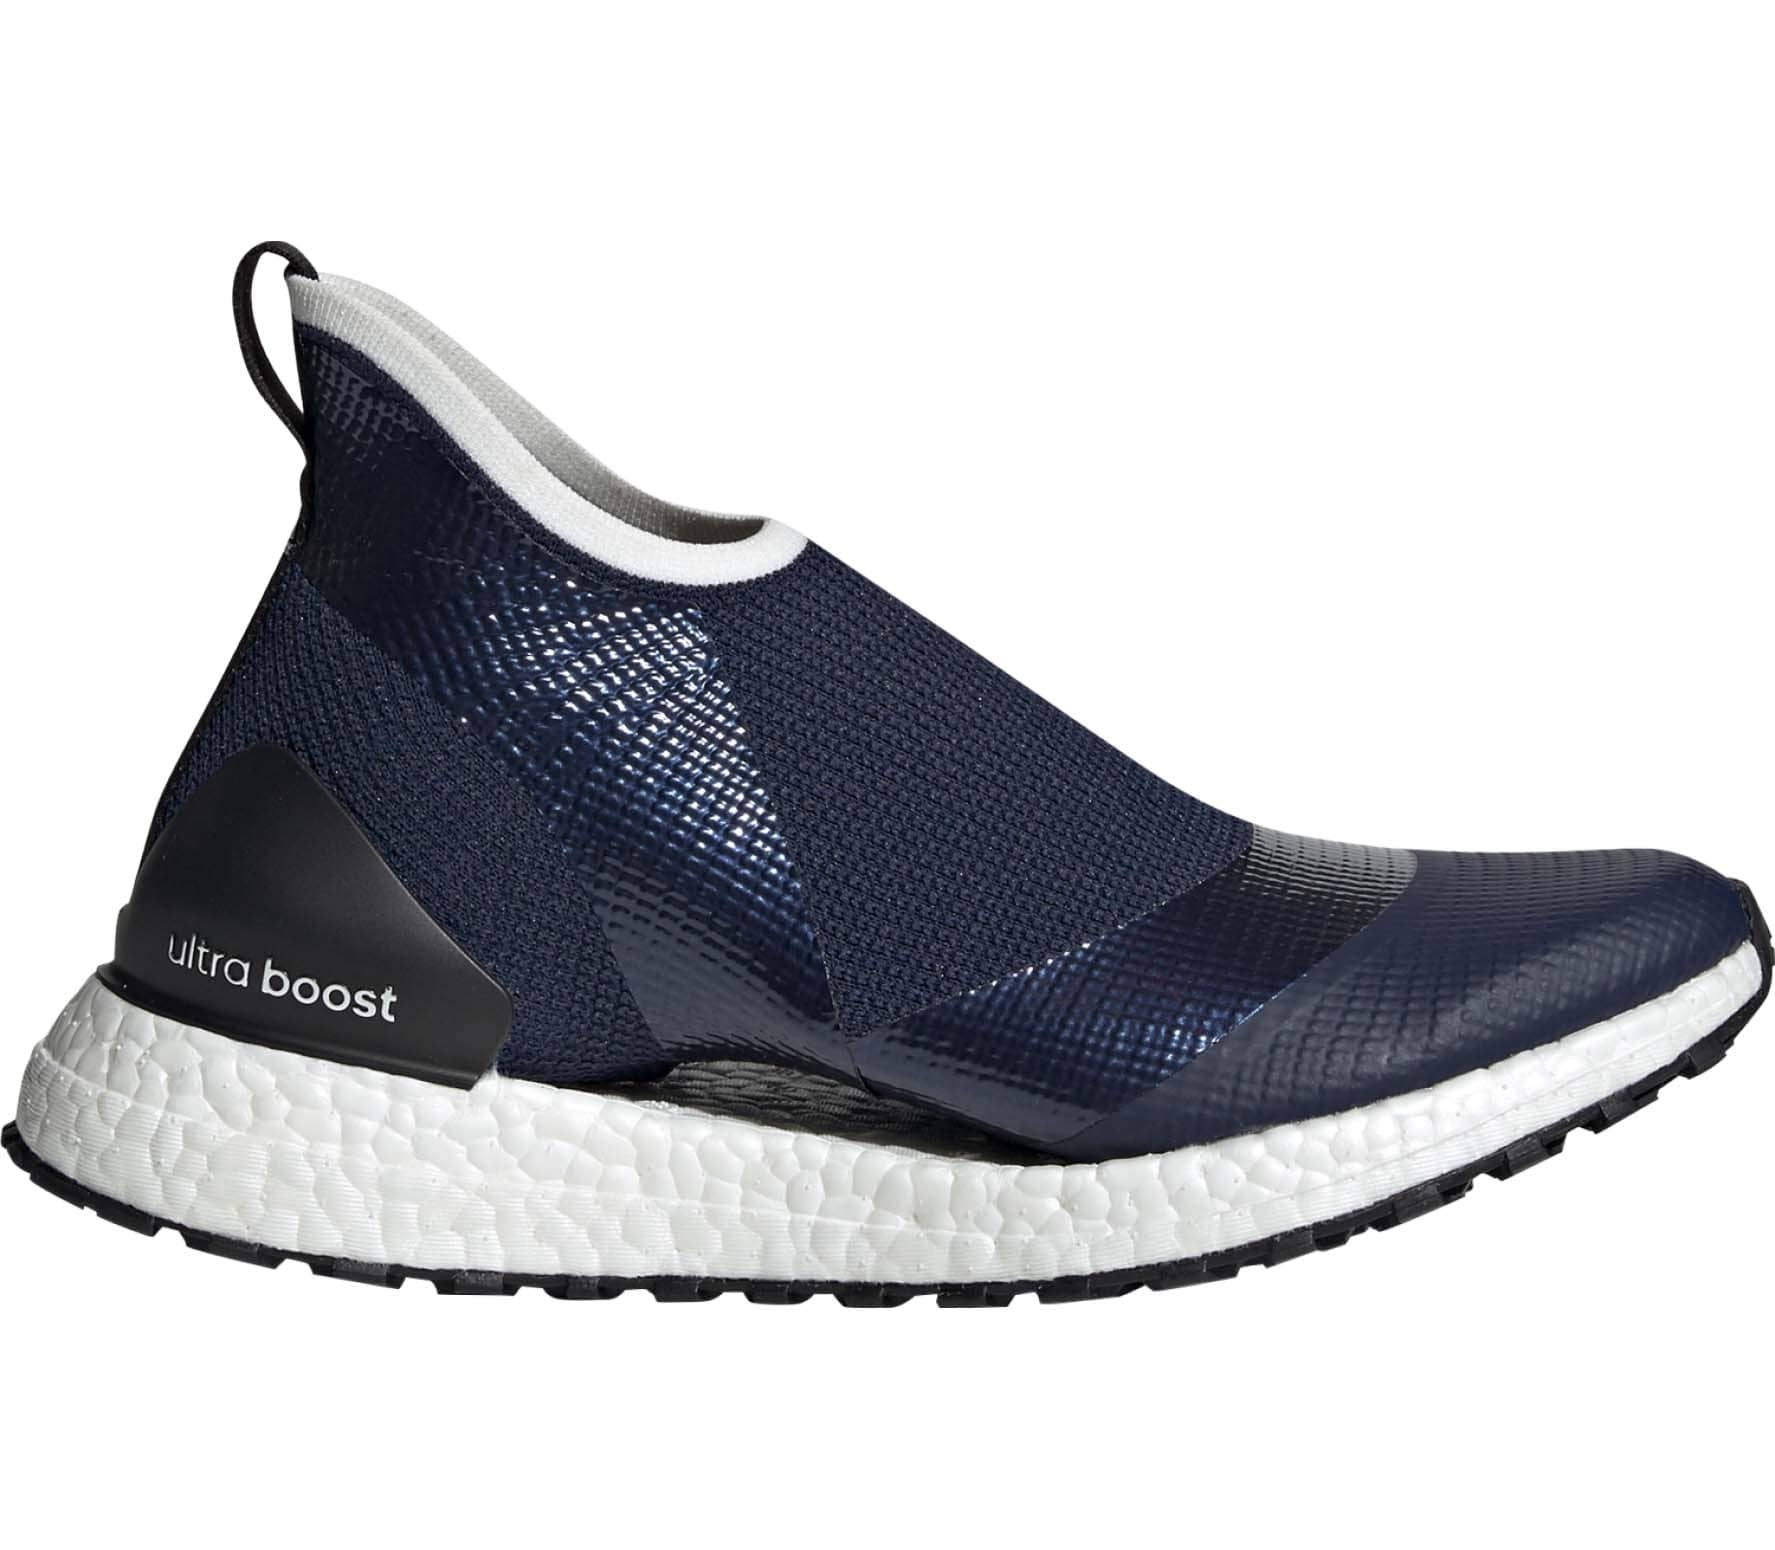 8 Reasons toNOT to Buy Adidas by Stella McCartney Ultra